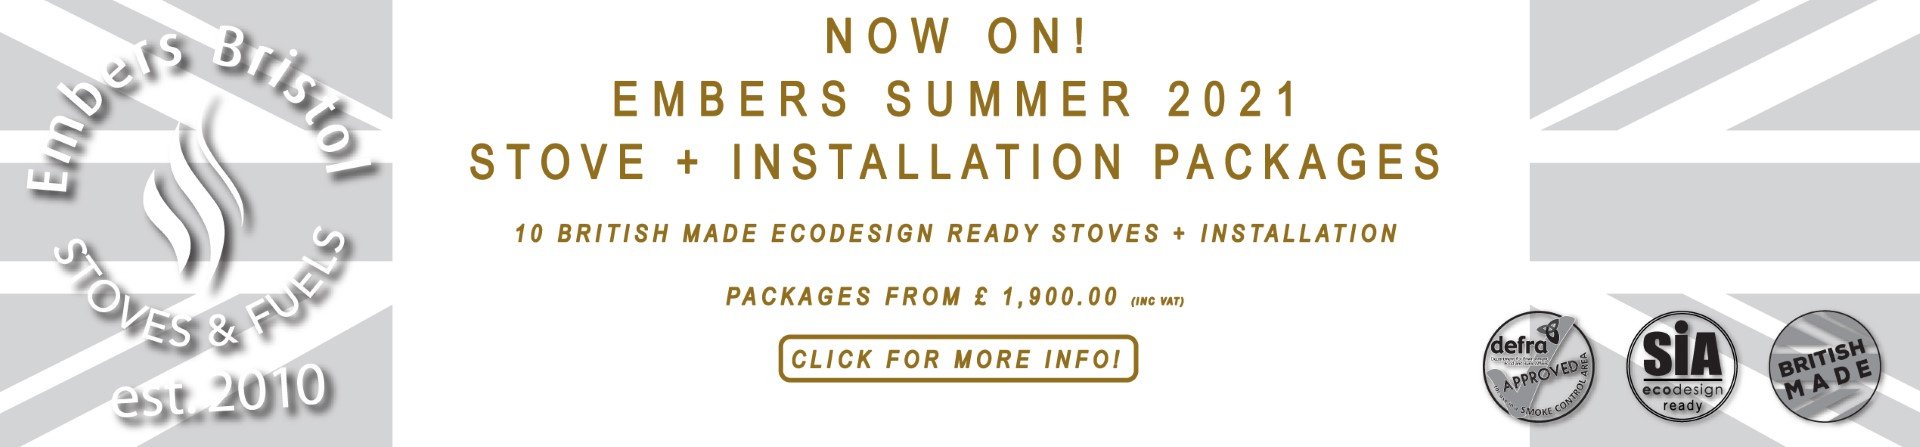 Embers Bristol Summer Offer 2021 Stove Installation Offers